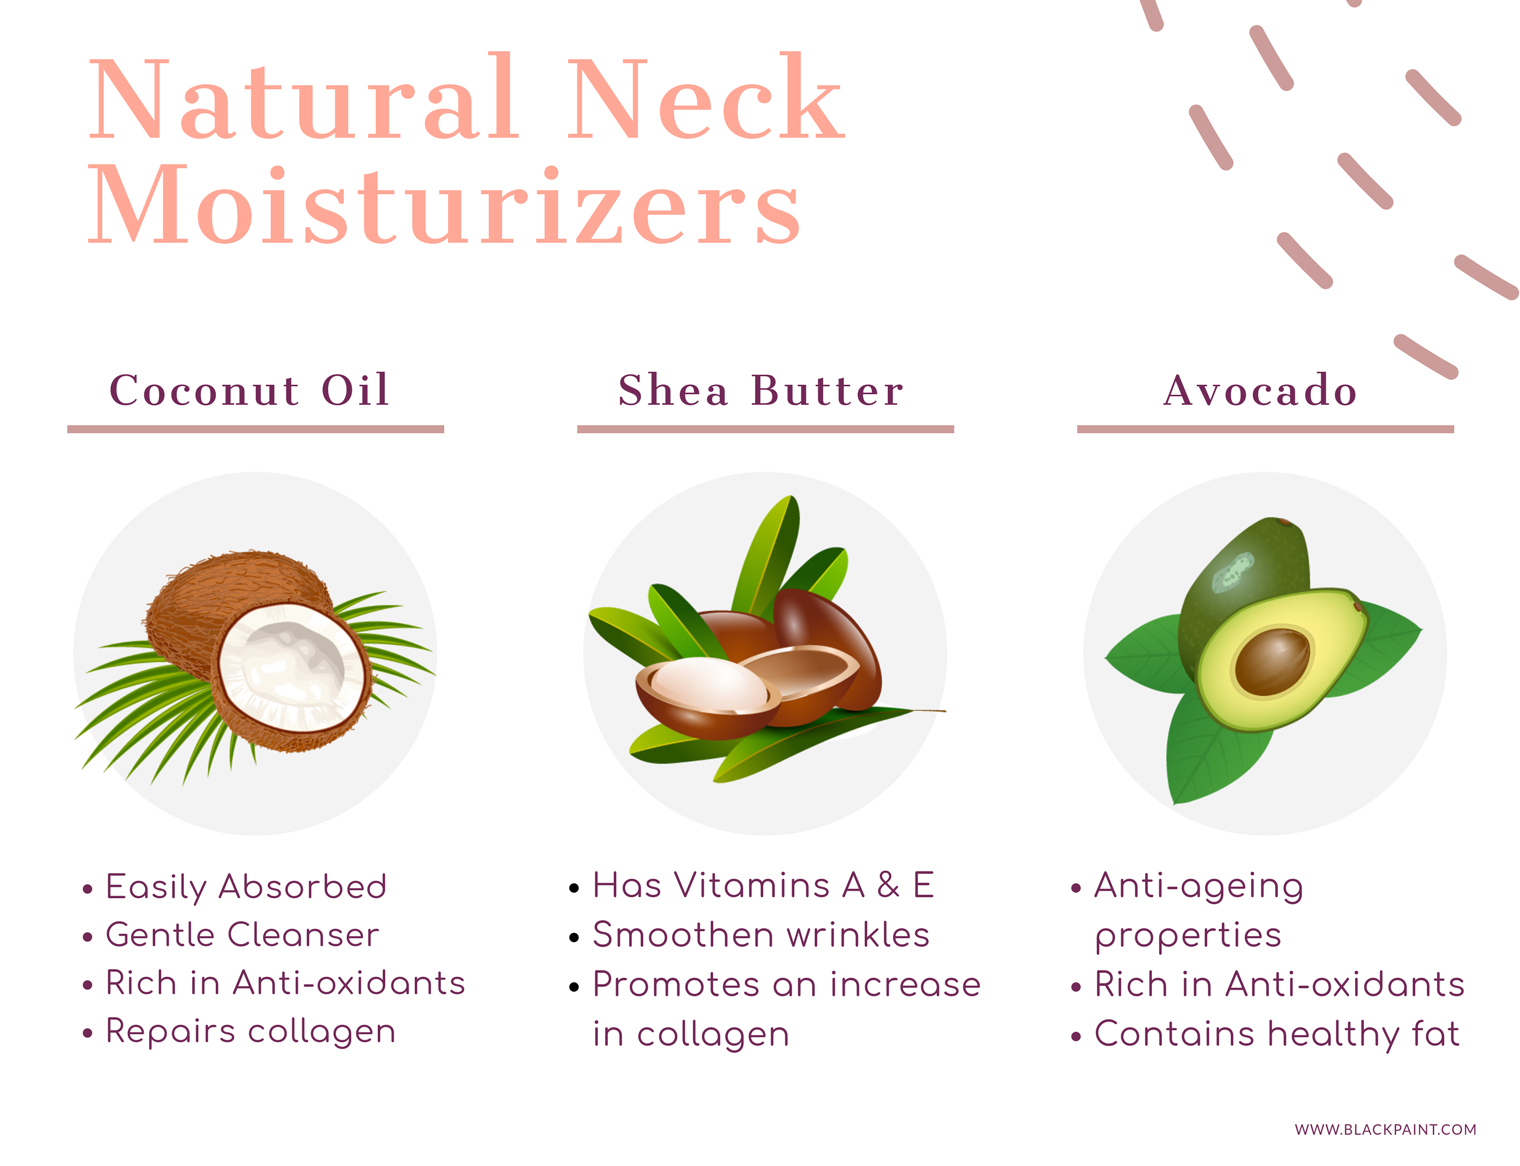 natural and nourishing moisturizing ingredients to prevent neck wrinkles